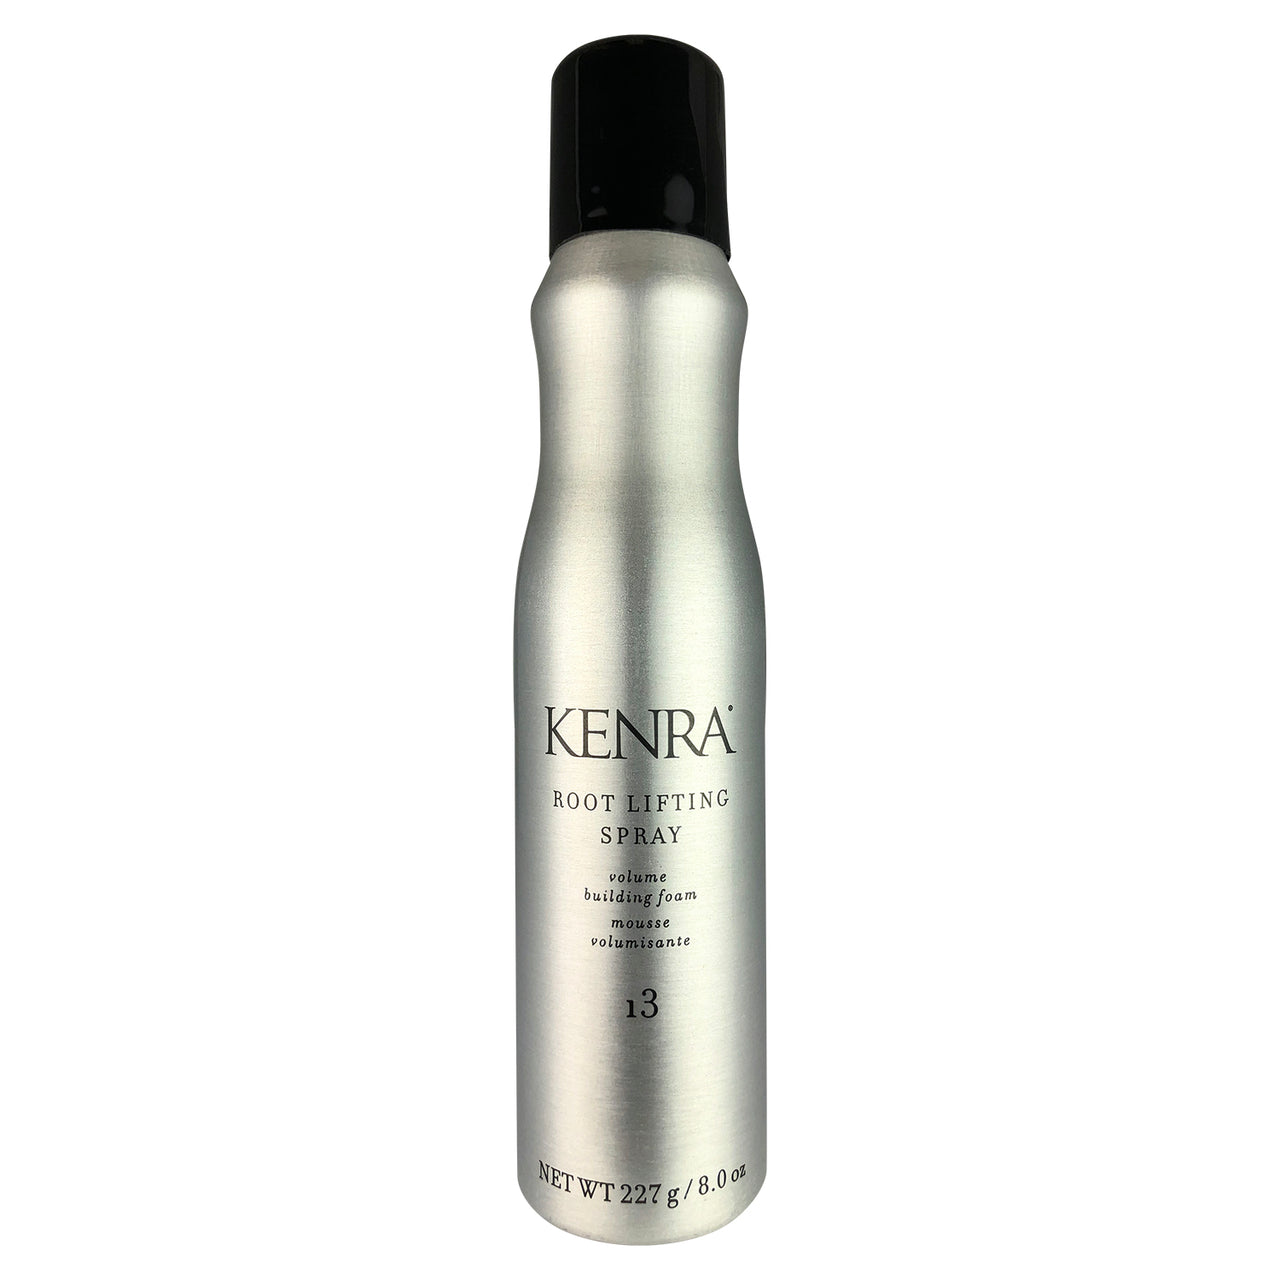 Kenra Root Lifting Hair Spray Volume Building Foam #13 8 oz